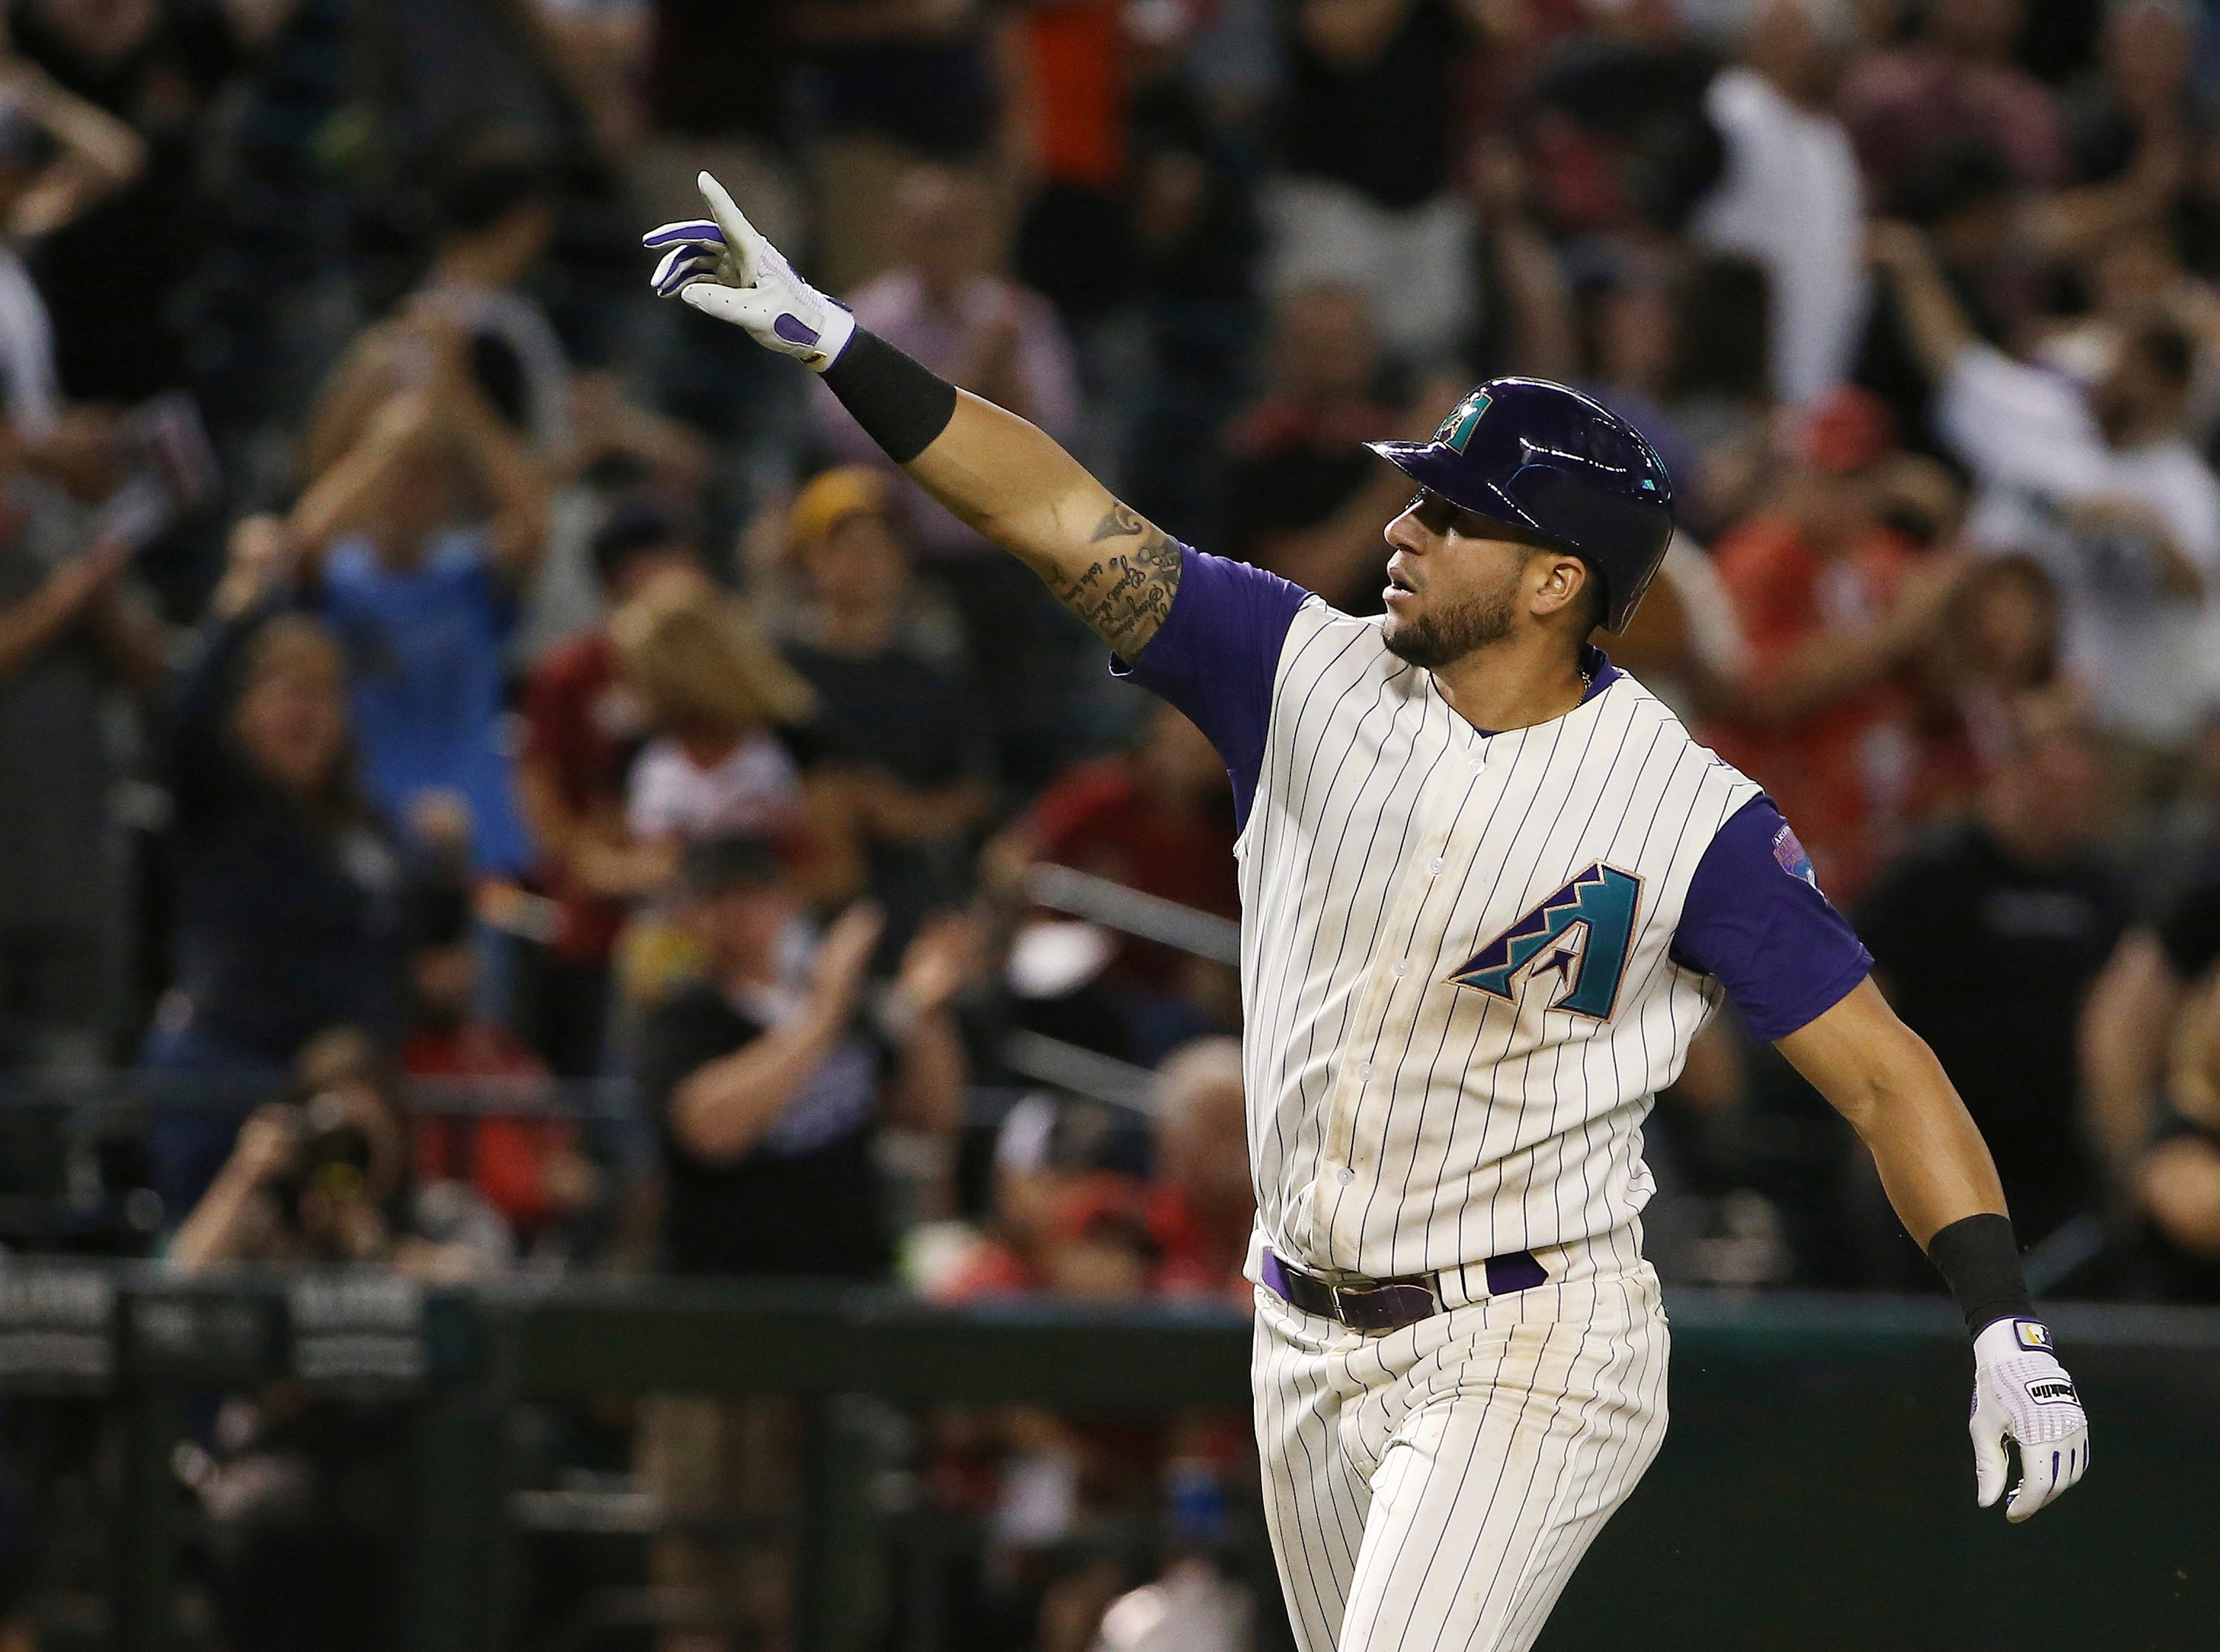 Arizona Diamondbacks' David Peralta celebrates his home run against the Atlanta Braves during the ninth inning of a baseball game Thursday, May 9, 2019, in Phoenix. (AP Photo/Ross D. Franklin)